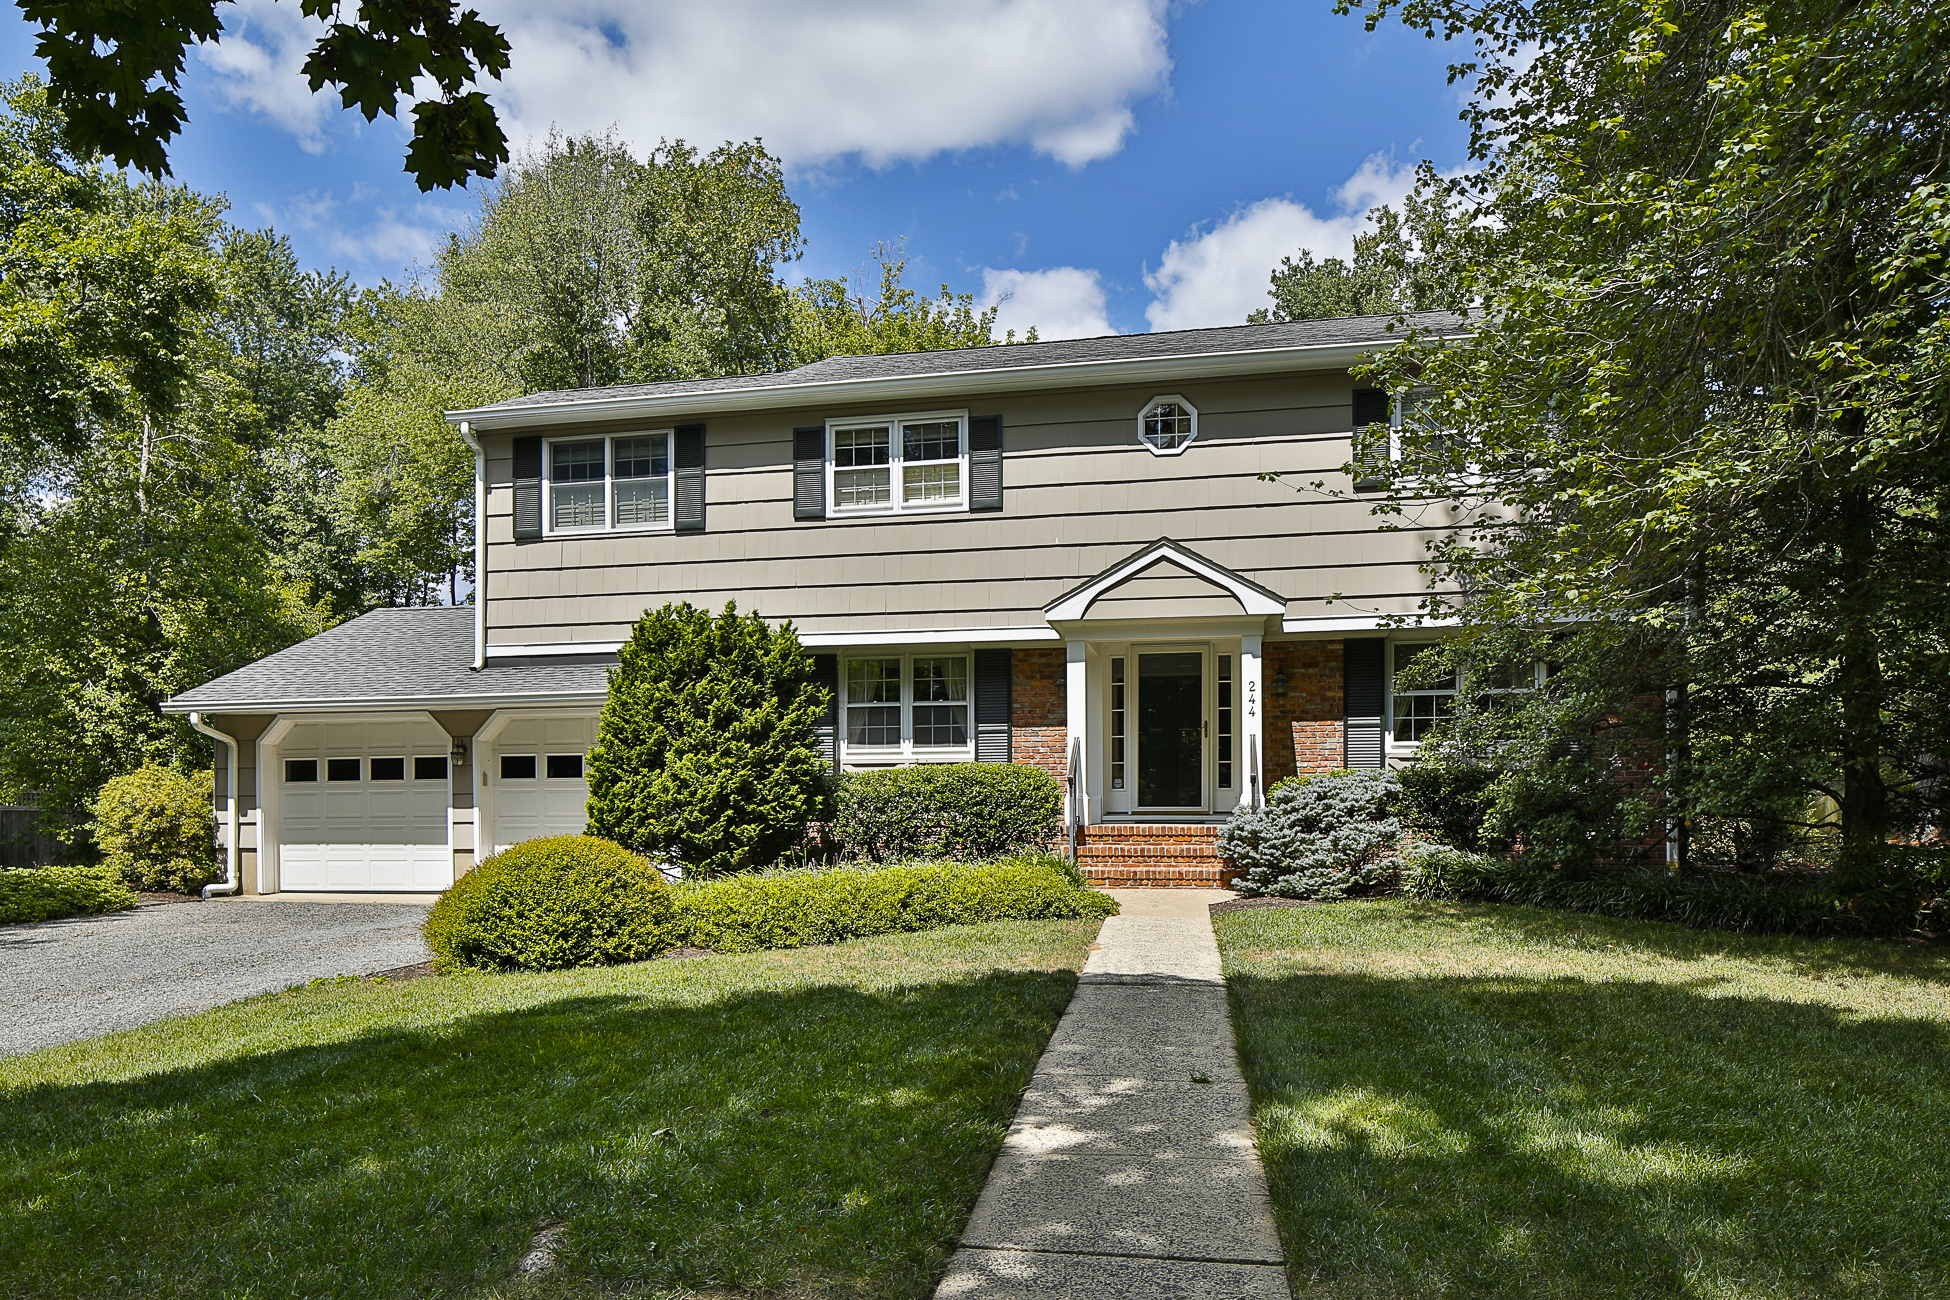 Single Family Home for Sale at Sun-Dappled Tranquility in Littlebrook 244 Dodds Lane Princeton, New Jersey 08540 United States